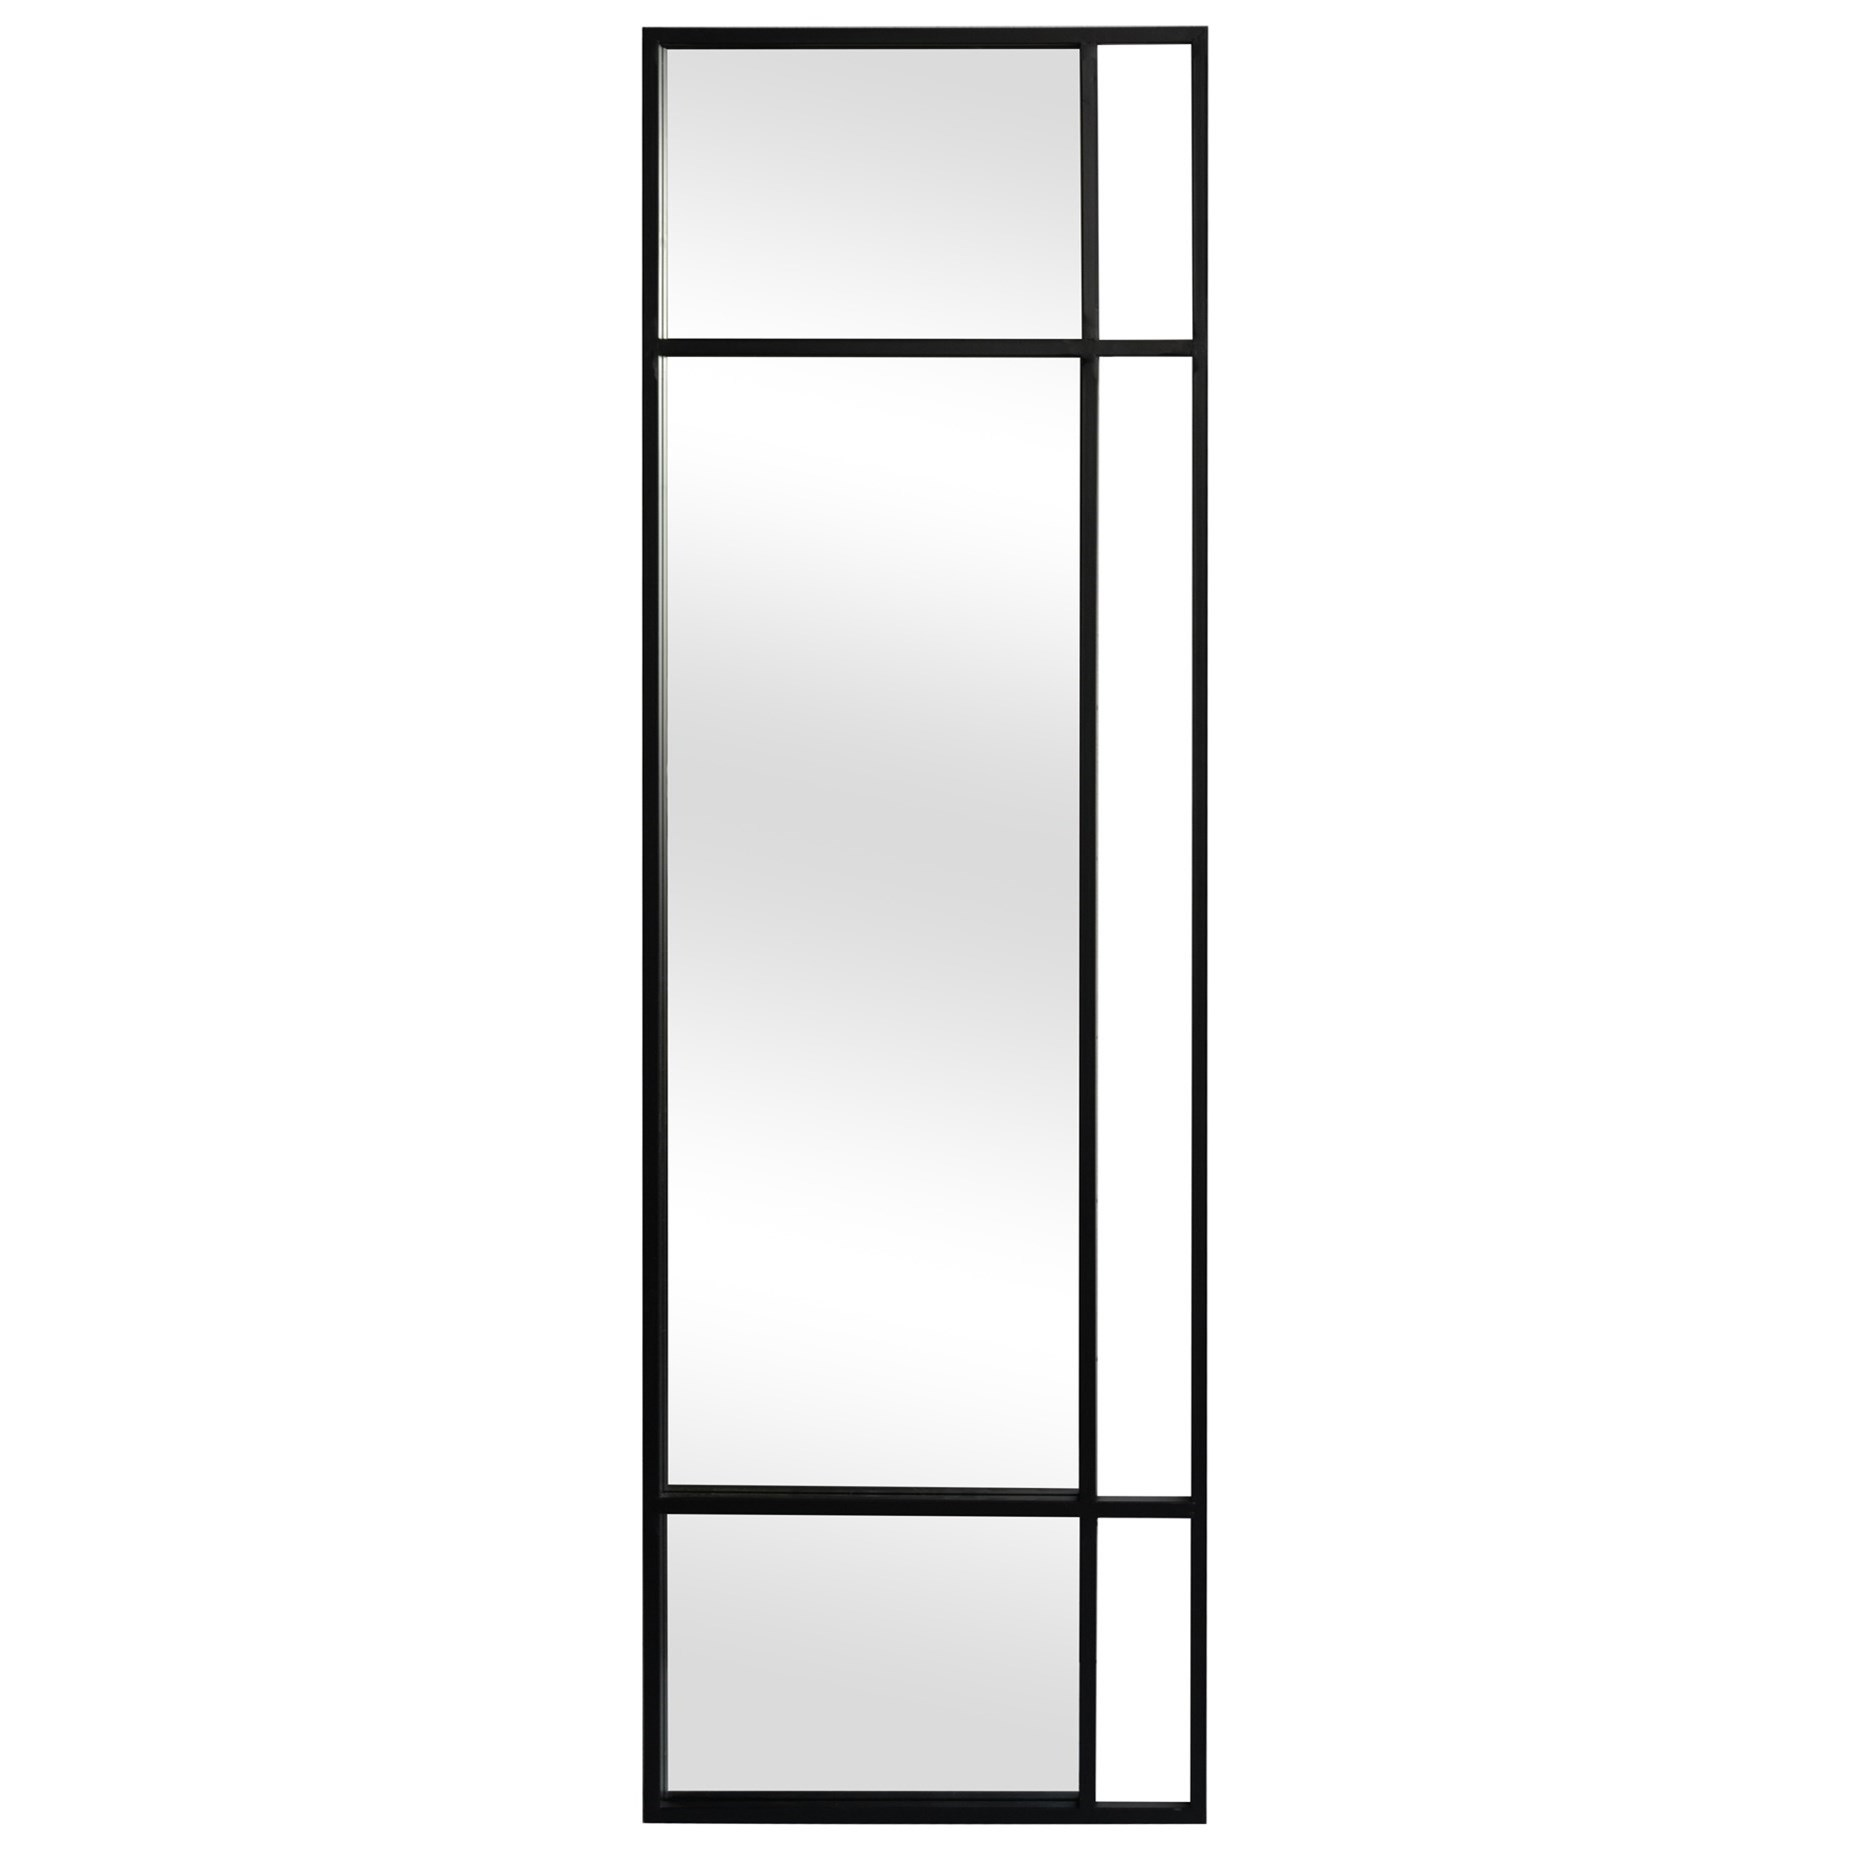 Moe S Home Collection Mirrors And Screens Grid Mirror